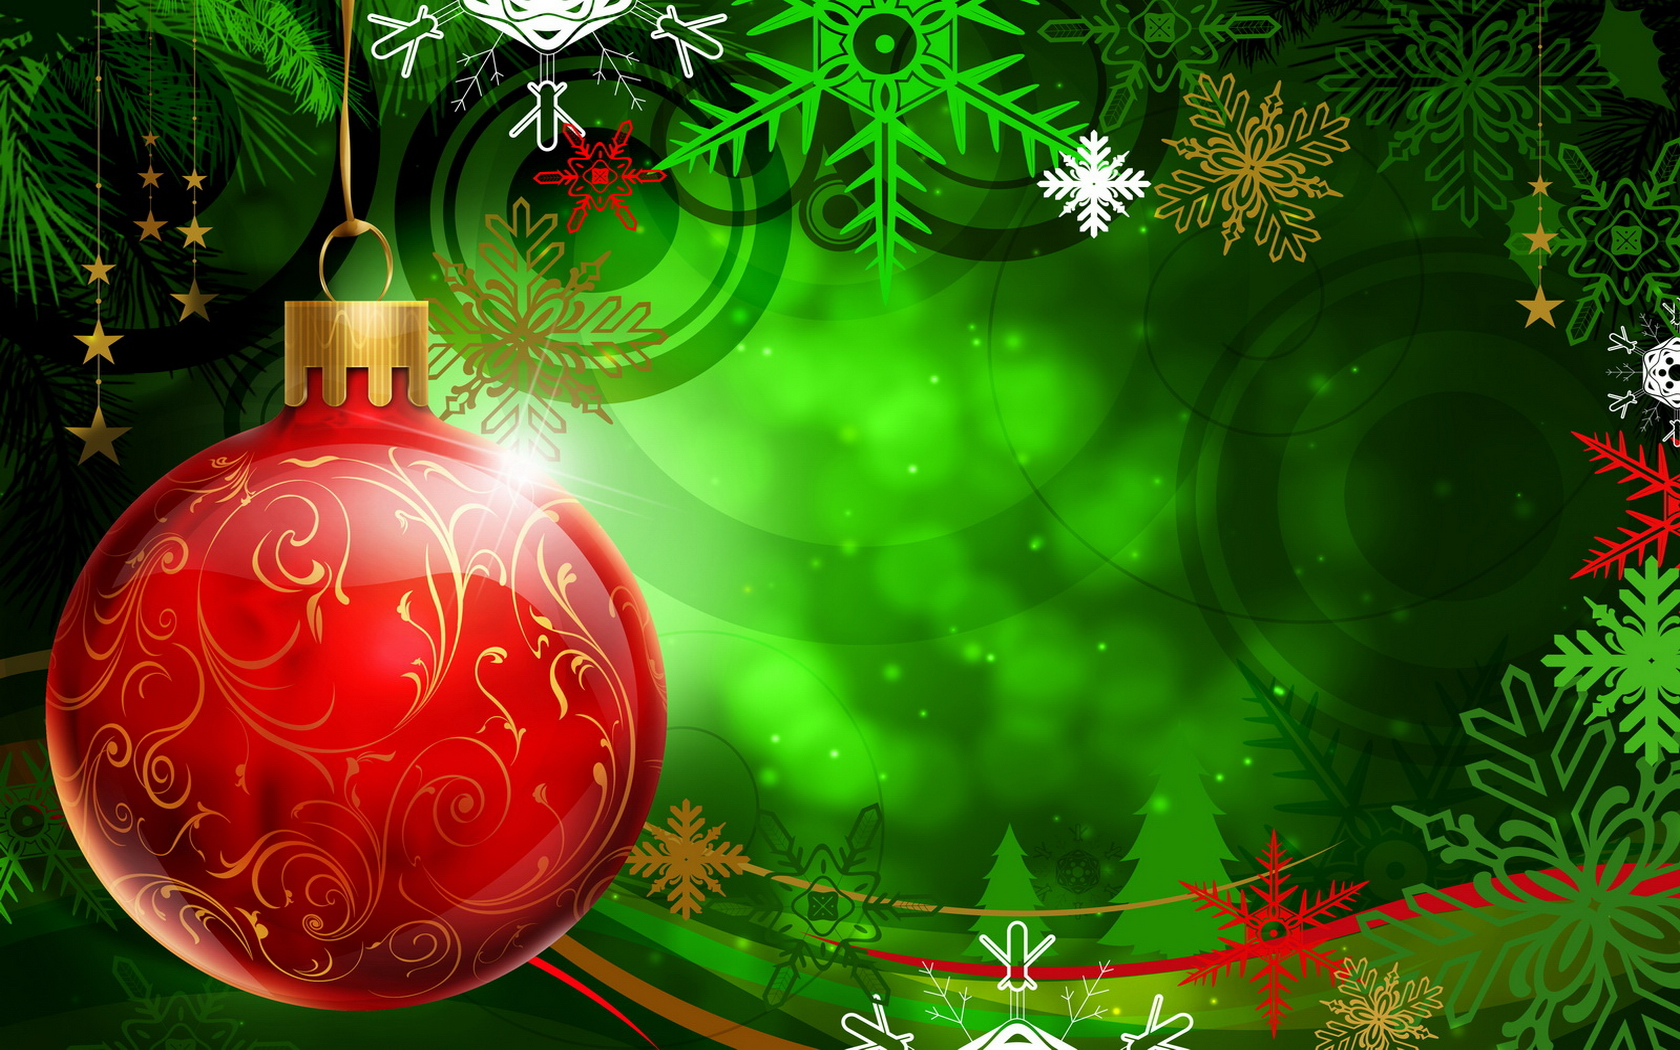 hd wallpapers 1080p free christmas wallpaper 1080p